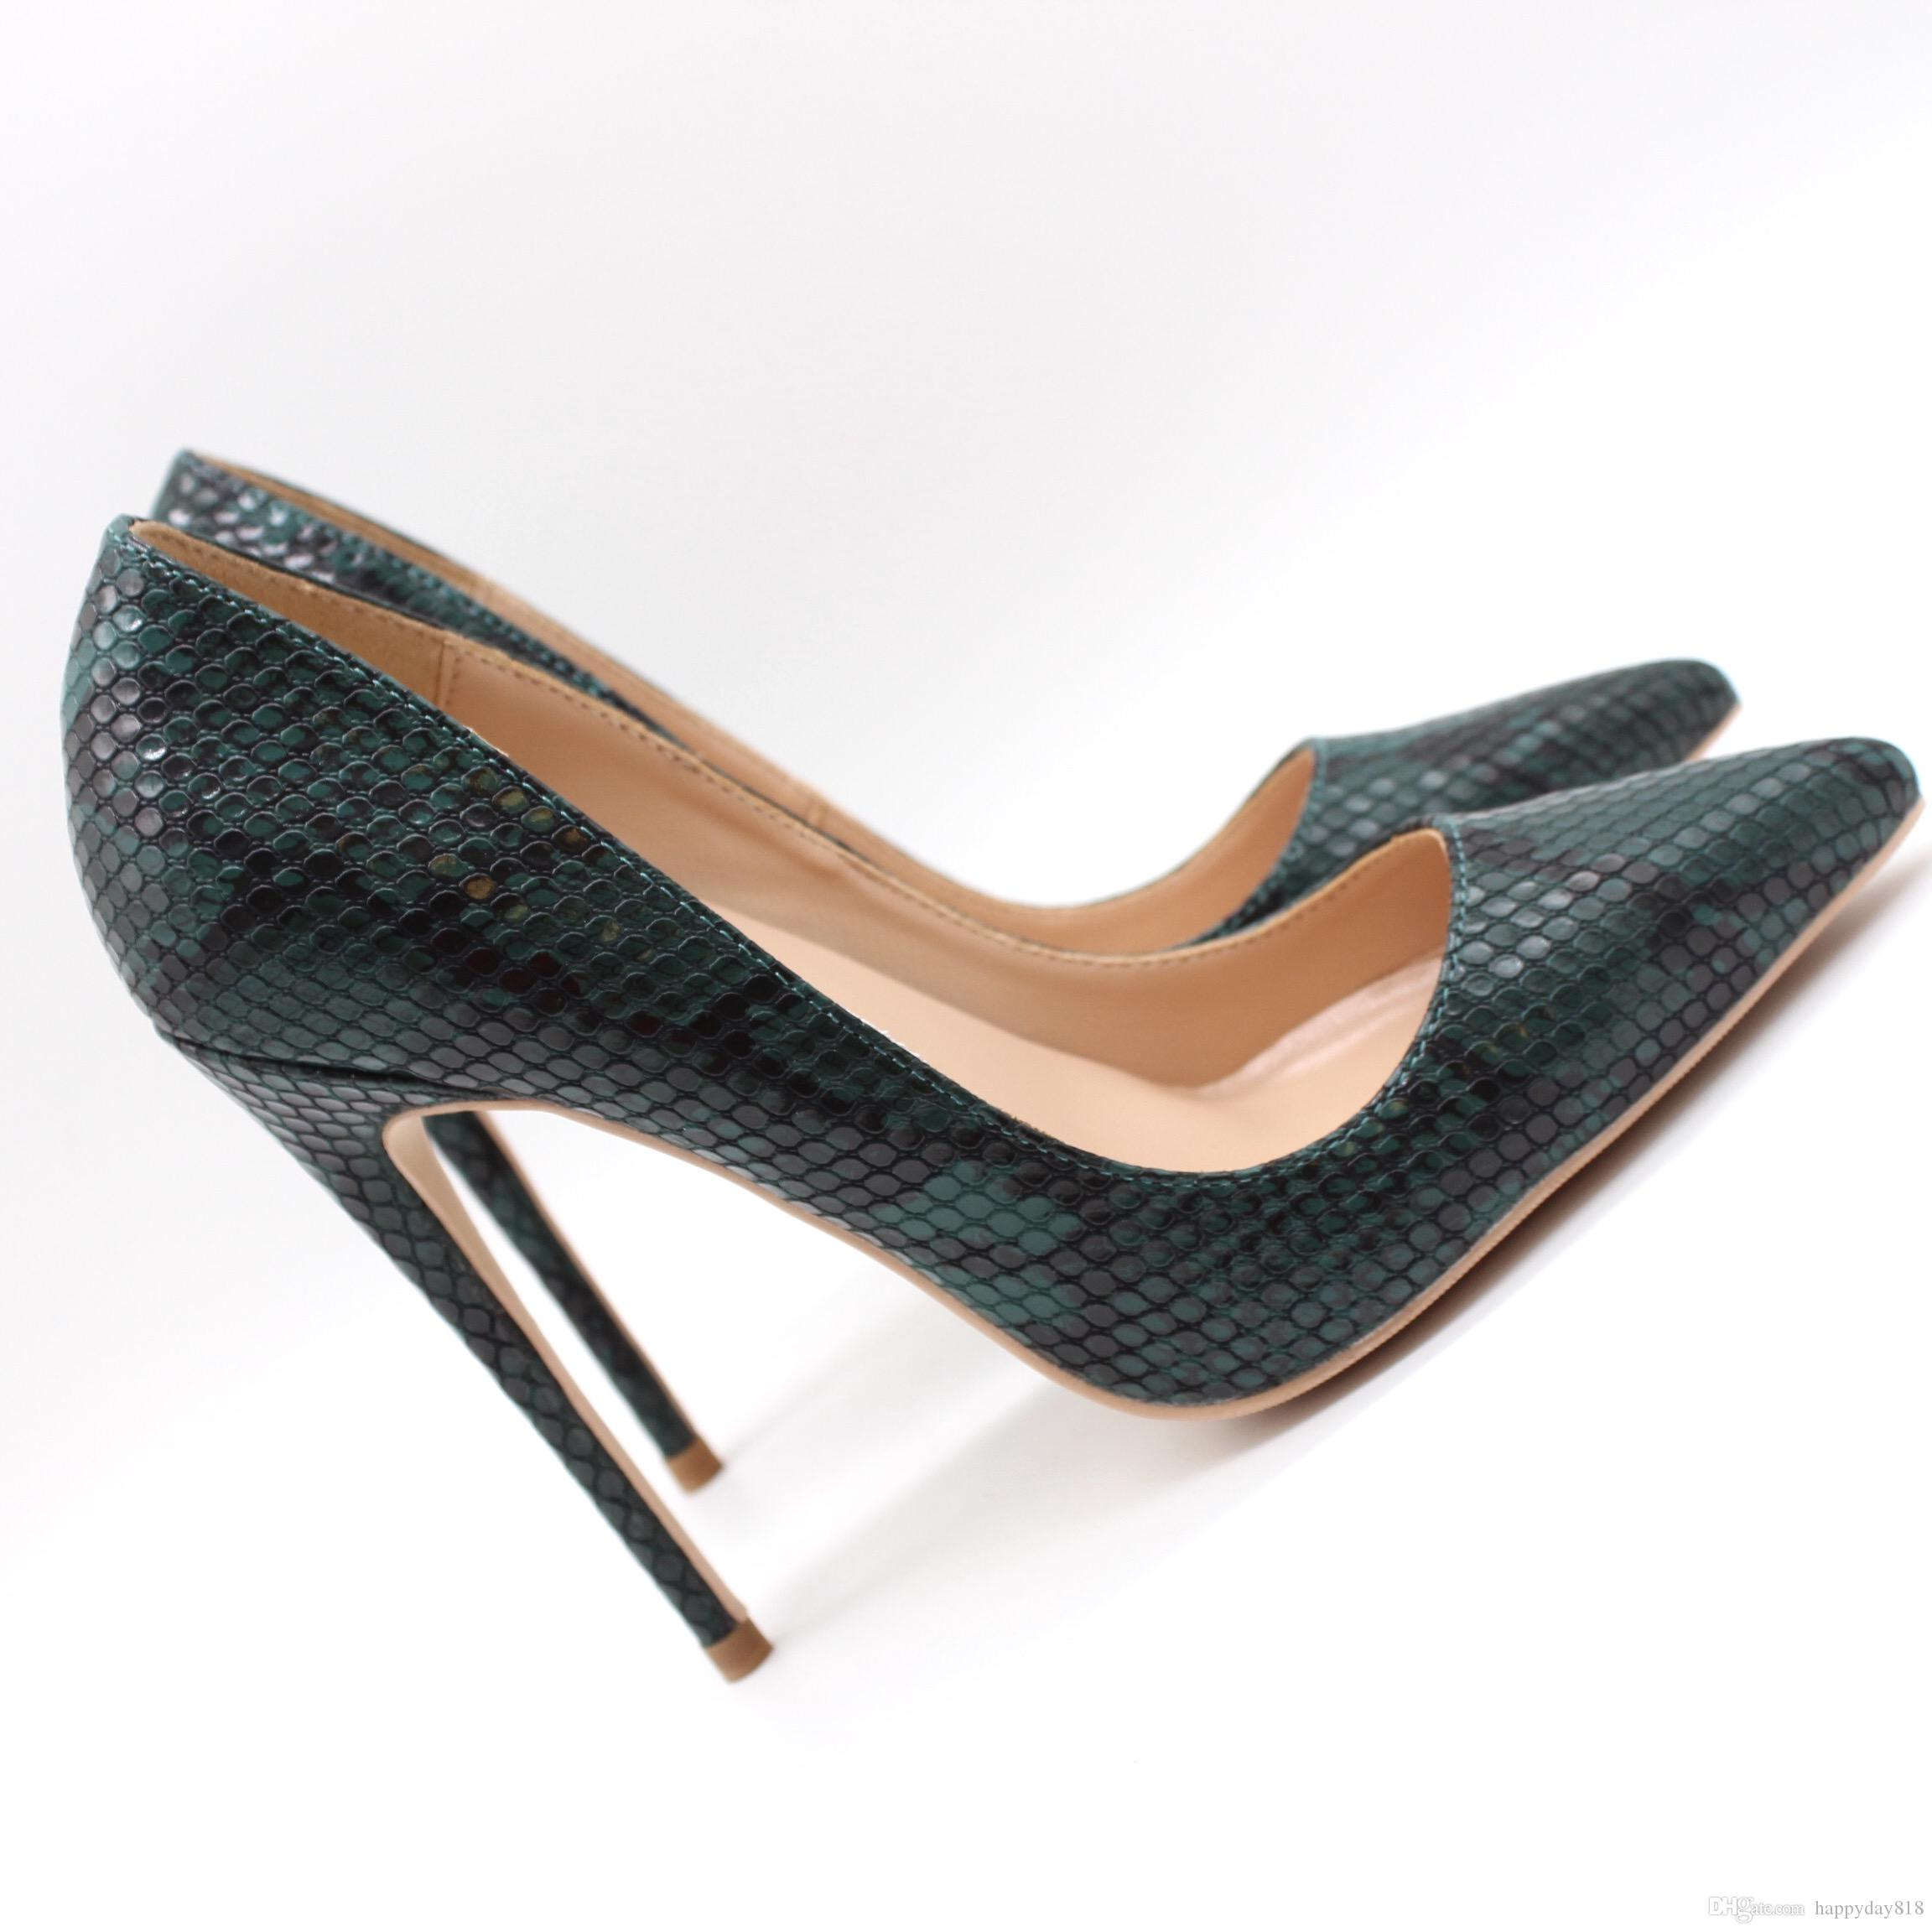 b0e3367383 Fashion Women Pumps Dark Green Snake Python Printed Point Toe High Heels  Cone Heel Shoes Sandals Thin Heel White Shoes Wholesale Shoes From  Happyday818, ...